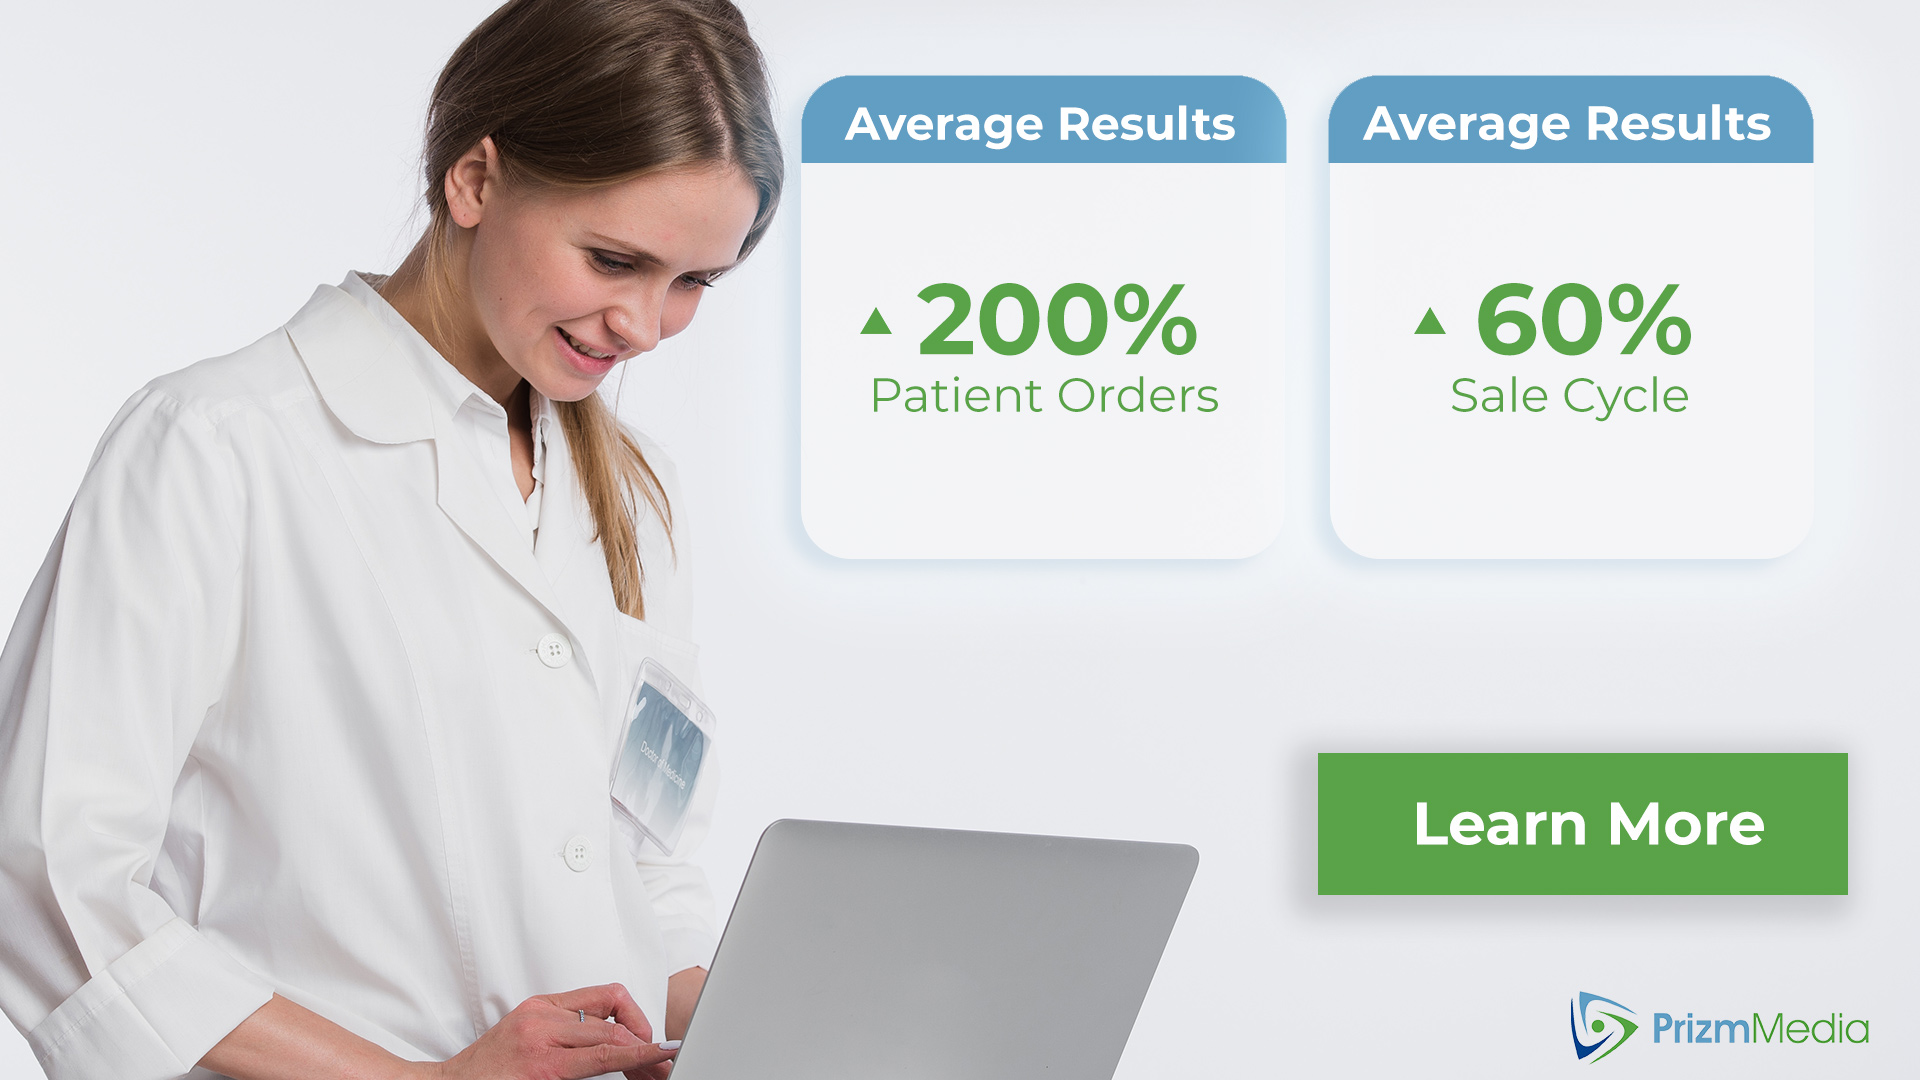 Prizm Media average results for increasing patient orders and sale cycle